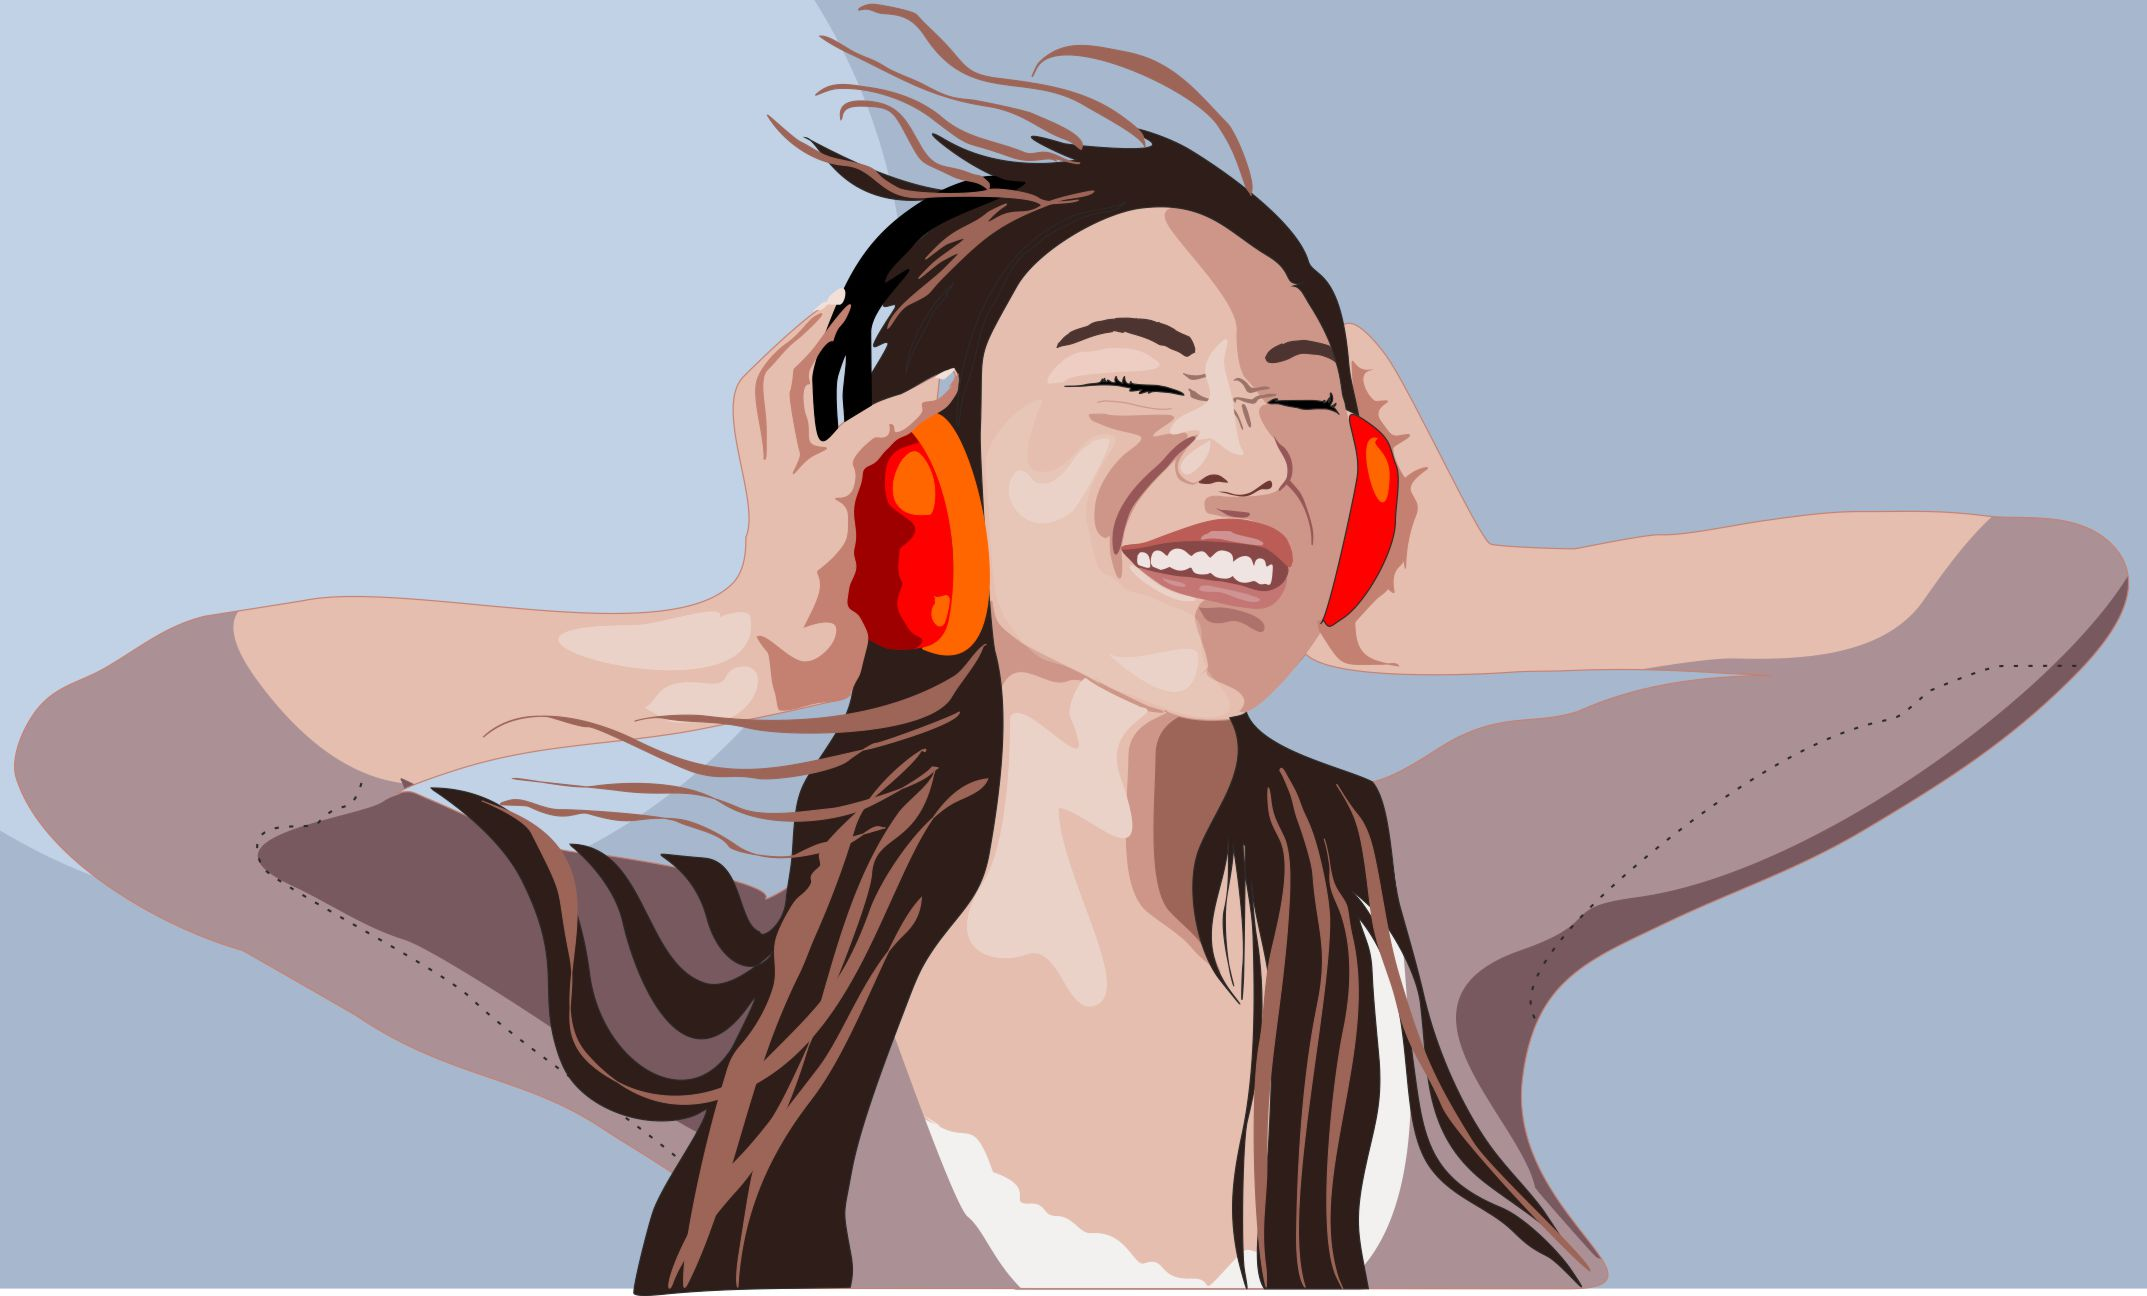 Woman, headphones, Music, Vector, illustration, vektor, Stefan Lindblad, Asian woman, girl, tjej, kvinna, CorelDRAW